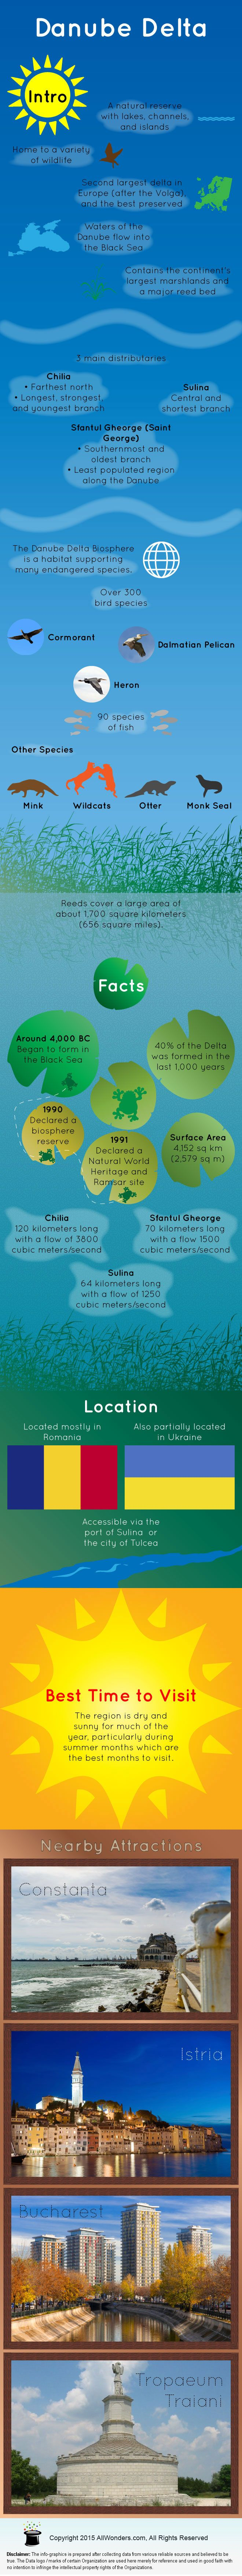 Danube Delta - Travel Infographic